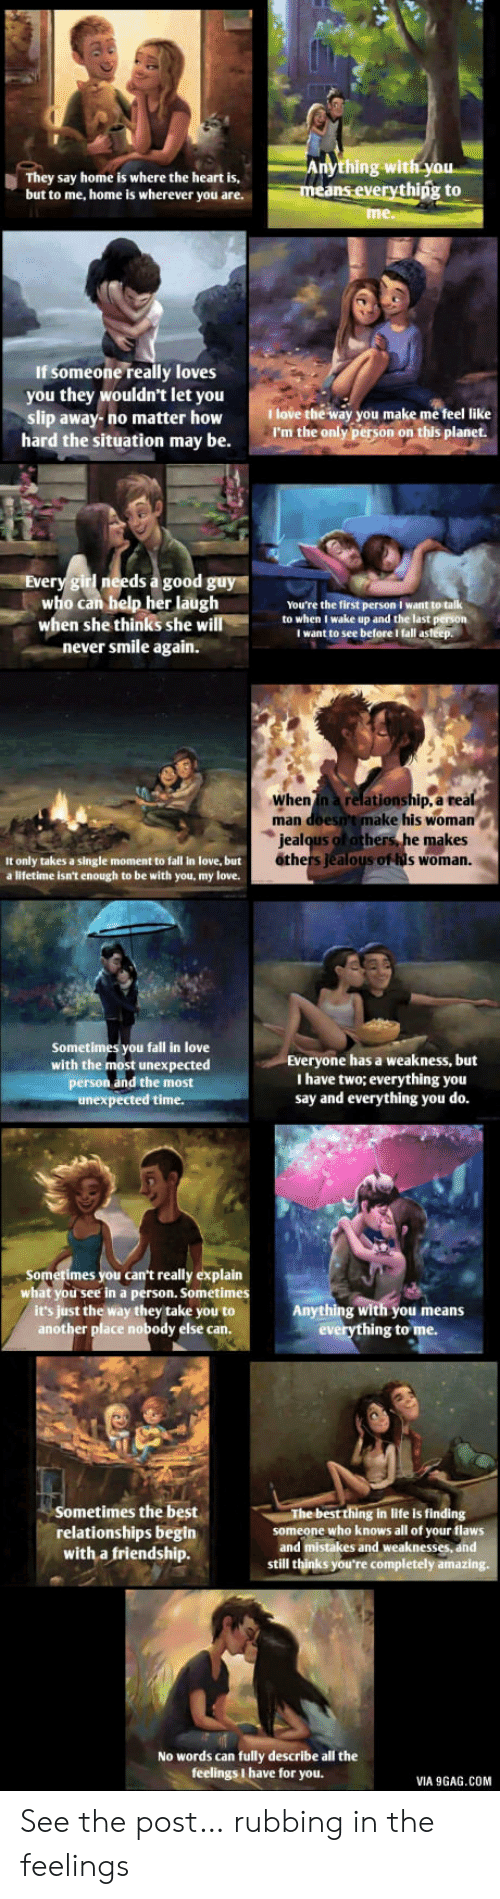 9gag, Fall, and Jealous: Anything with you  means everythipg to  They say home is where the heart is,  but to me, home is wherever you are.  me.  If someone really loves  you they wouldn't let you  slip away-no matter how  hard the situation may be.  Ilove the way you make me feel like  I'm the only person on this planet  Every girl needs a good guy  who can help her laugh  when she thinks she will  never smile again.  You're the first person I want to talk  to when I wake up and the last person  I want to see before I fall asteep.  When in a relationship, a real  man doesn't make his woman  jealqus of othersS he makes  others Jealous of his woman.  It only takes a single moment to fall in love, but  a lifetime isn't enough to be with you, my love.  Sometimes you fall in love  with the most unexpected  person and the most  unexpected time  Everyone has a weakness, but  I have two; everrything you  say and everything you do.  Sometimes you can't really explain  what you see in a person. Sometimes  it's just the way they take you to  another place nobody else can.  Anything with you means  everything to me.  Sometimes the best  relationships begin  with a friendship.  The best thing in life is finding  someone who knows all of your flaws  and mistakes and weaknesses, and  still thinks you're completely amazing  No words can fully describe all the  feelings I have for you.  VIA 9GAG.COM See the post… rubbing in the feelings